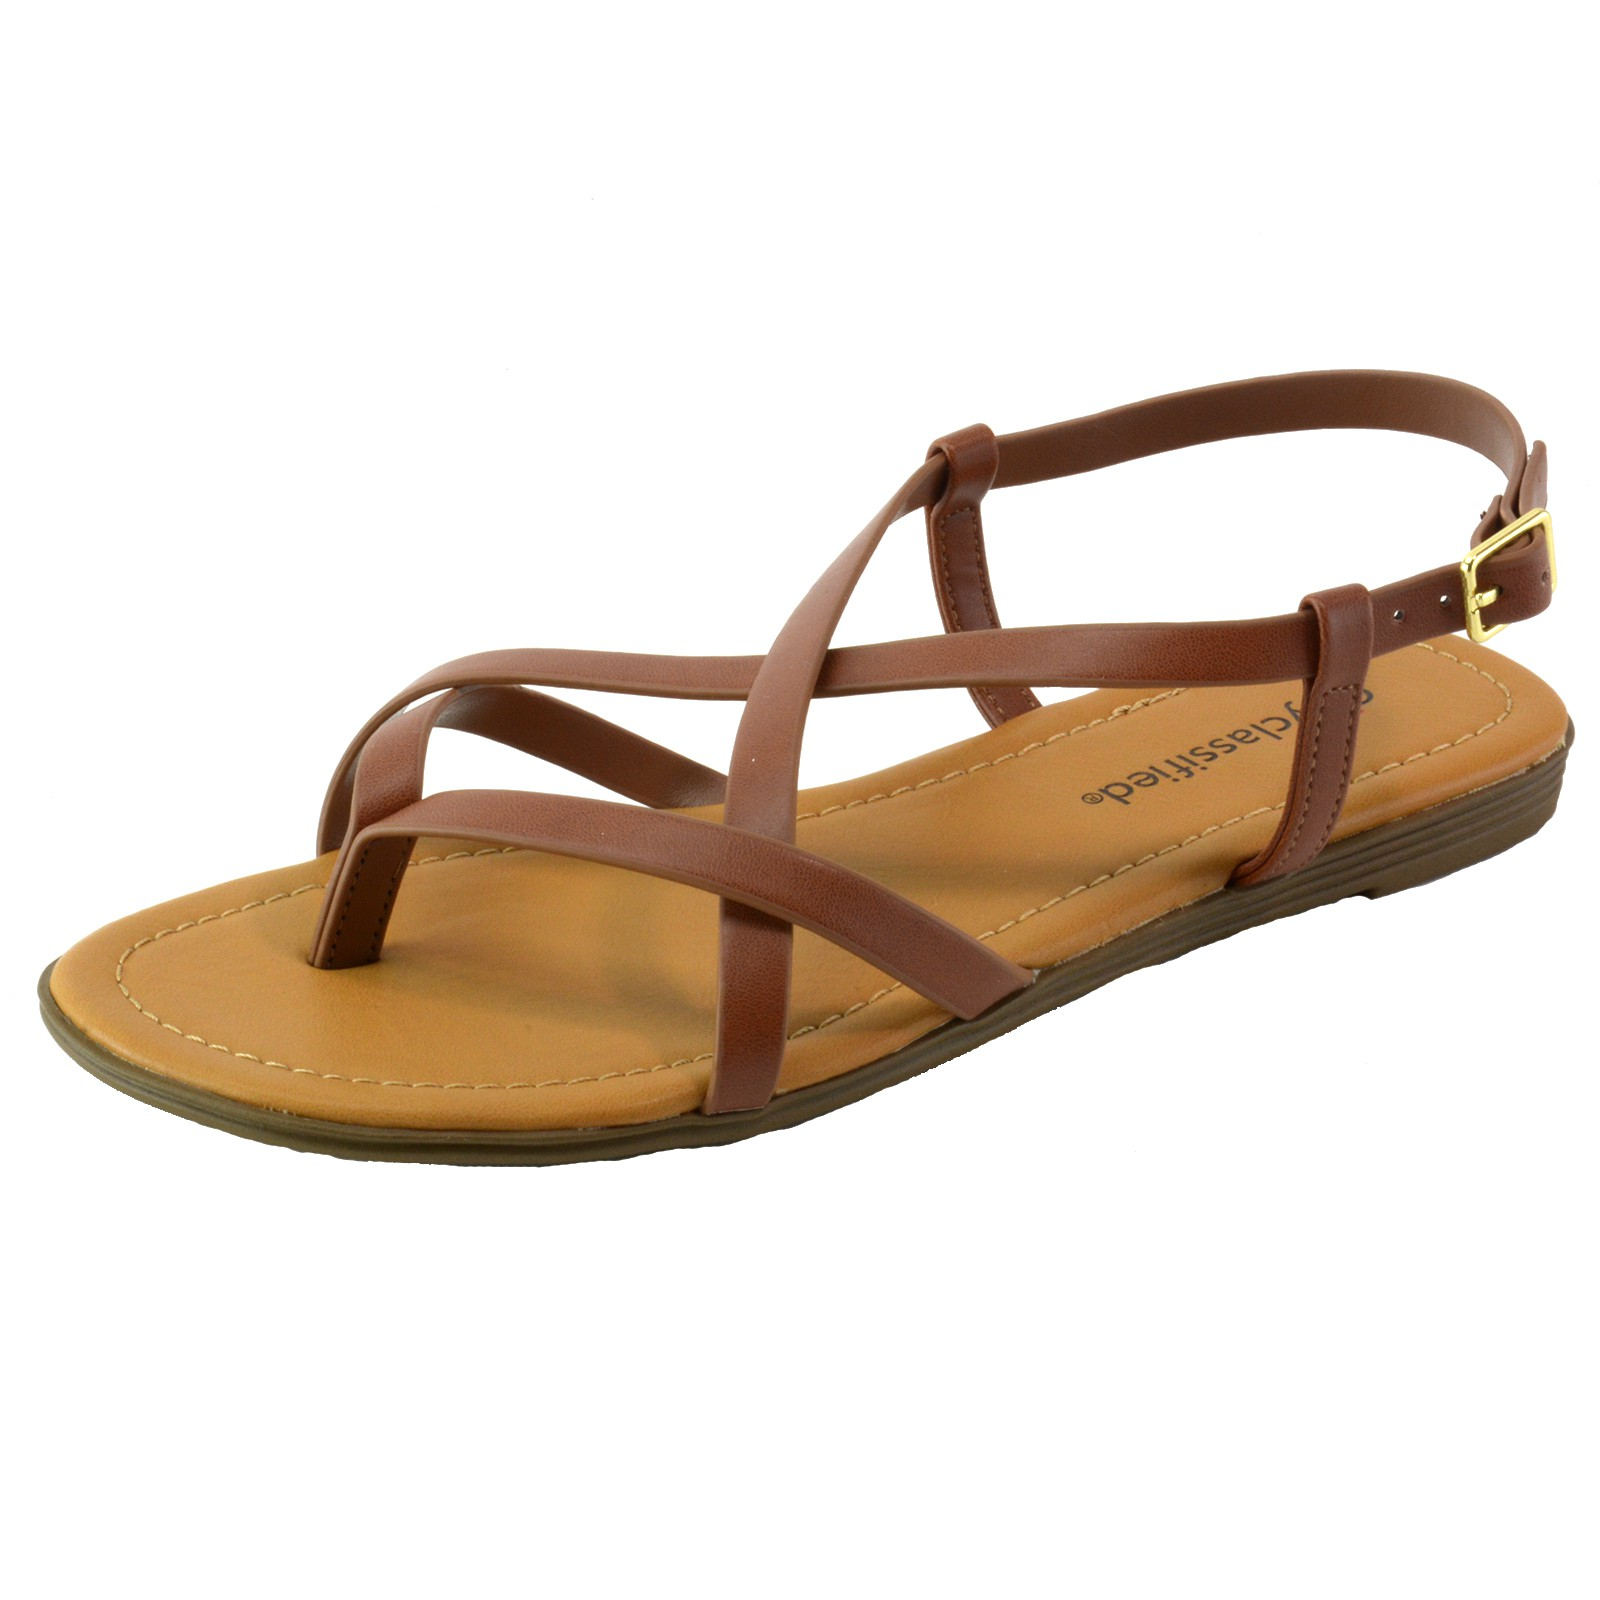 City Classified Women's Flat Shoes Strappy Thong Slingback